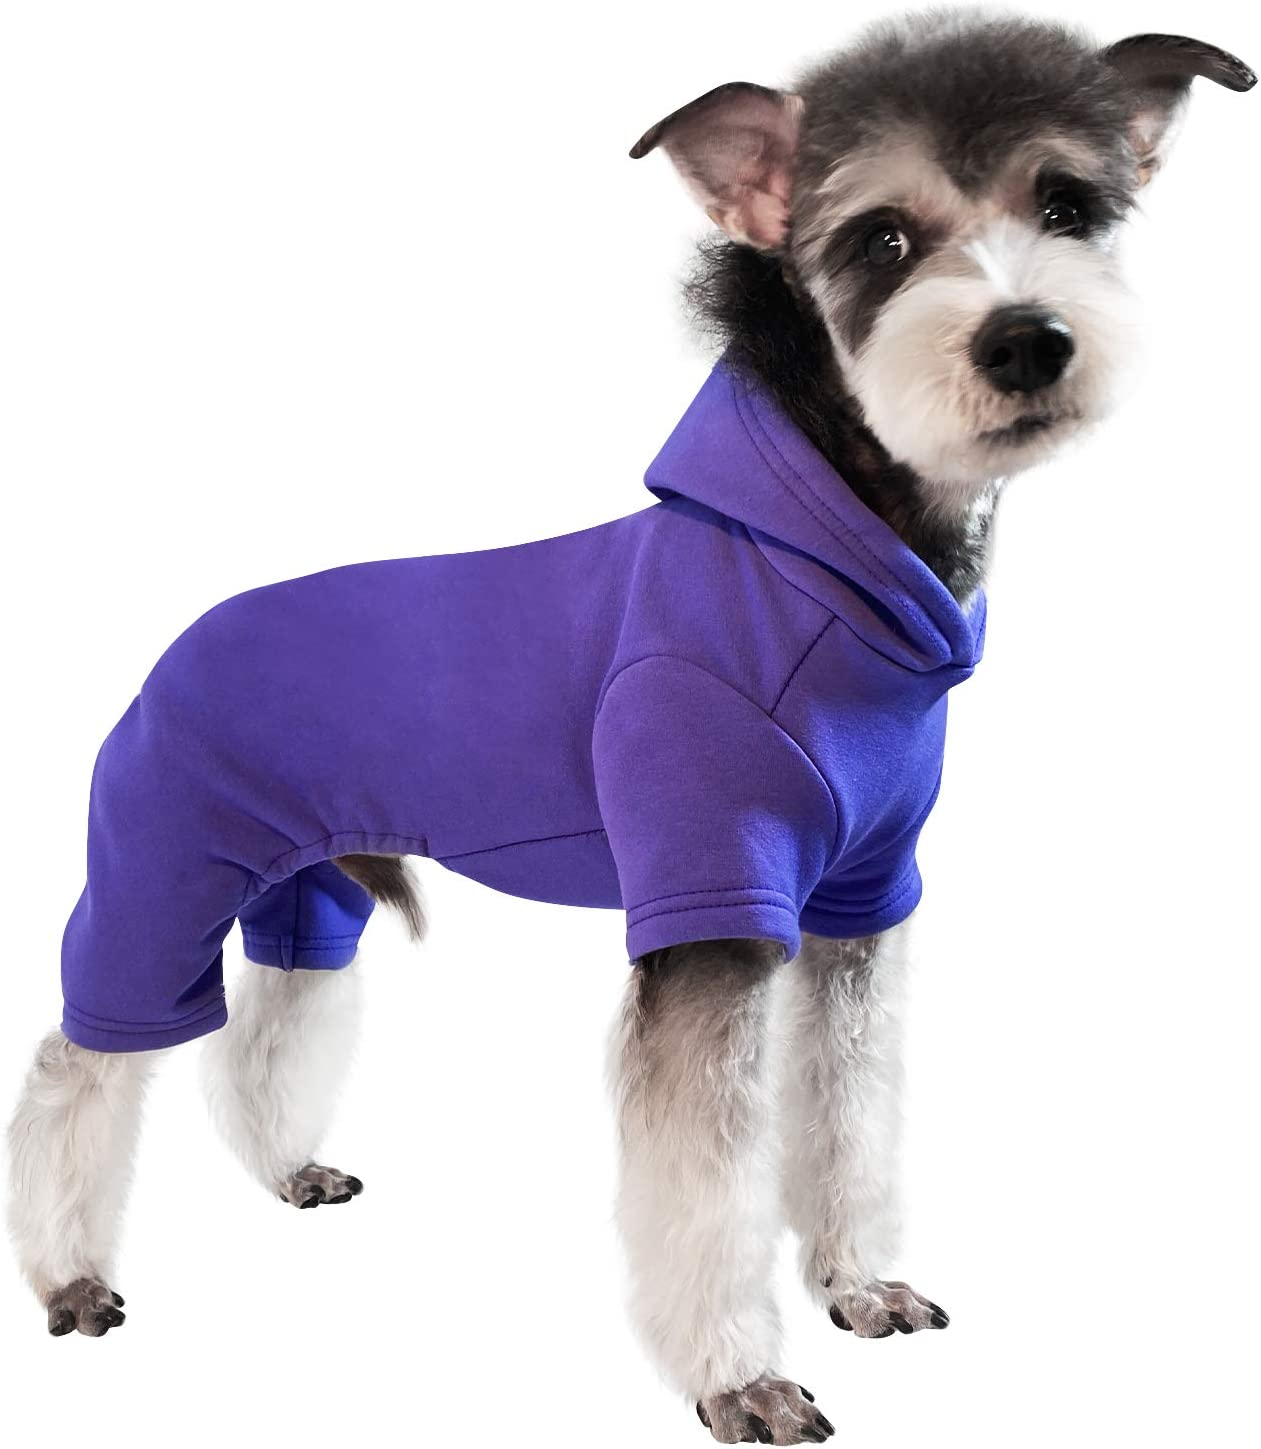 Topkins Winter Dog Clothes Dog Sweatshirts Fleece Dog Hoodie with 4 Legs for Cold Weather Stretchable Dog Pullover with Hat Solid Color Pet Apparel Pink